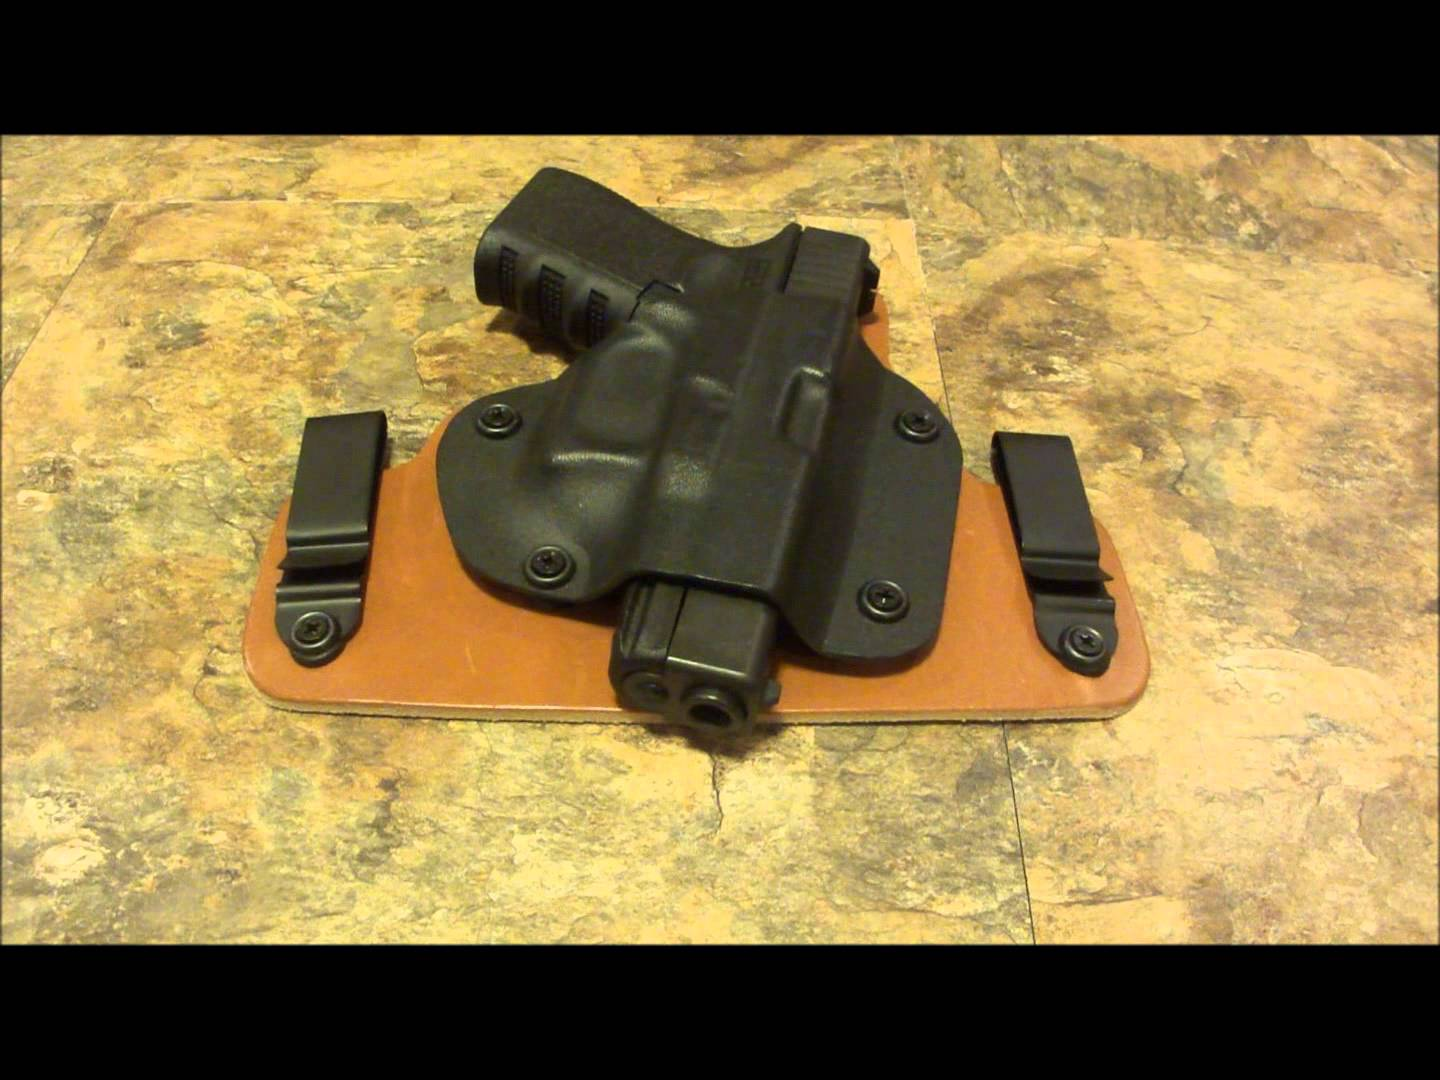 Homestead Holster and *NEW* Magazine Holder